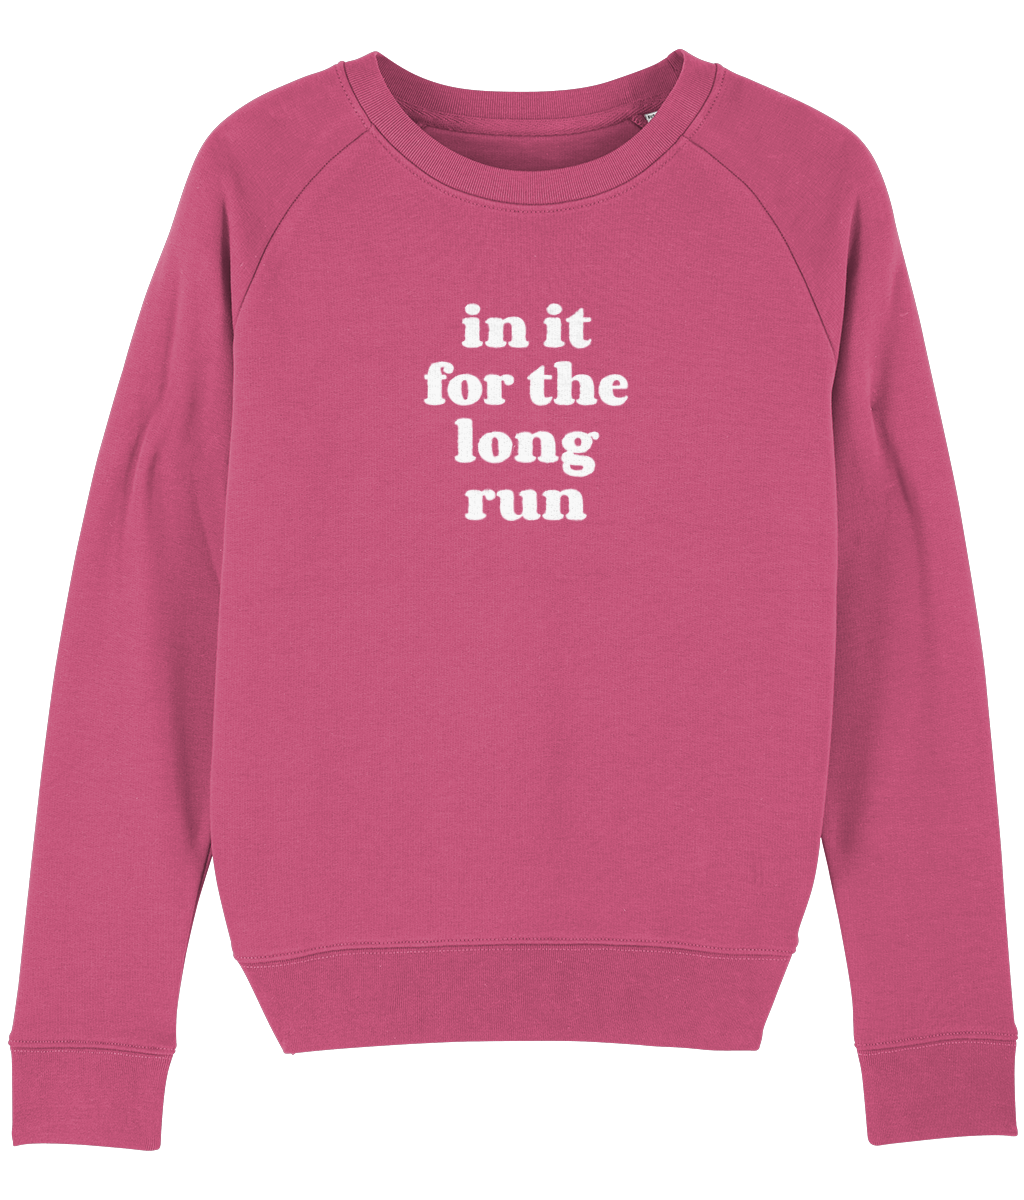 In it for the Long Run Sweater - Track and Fit Club